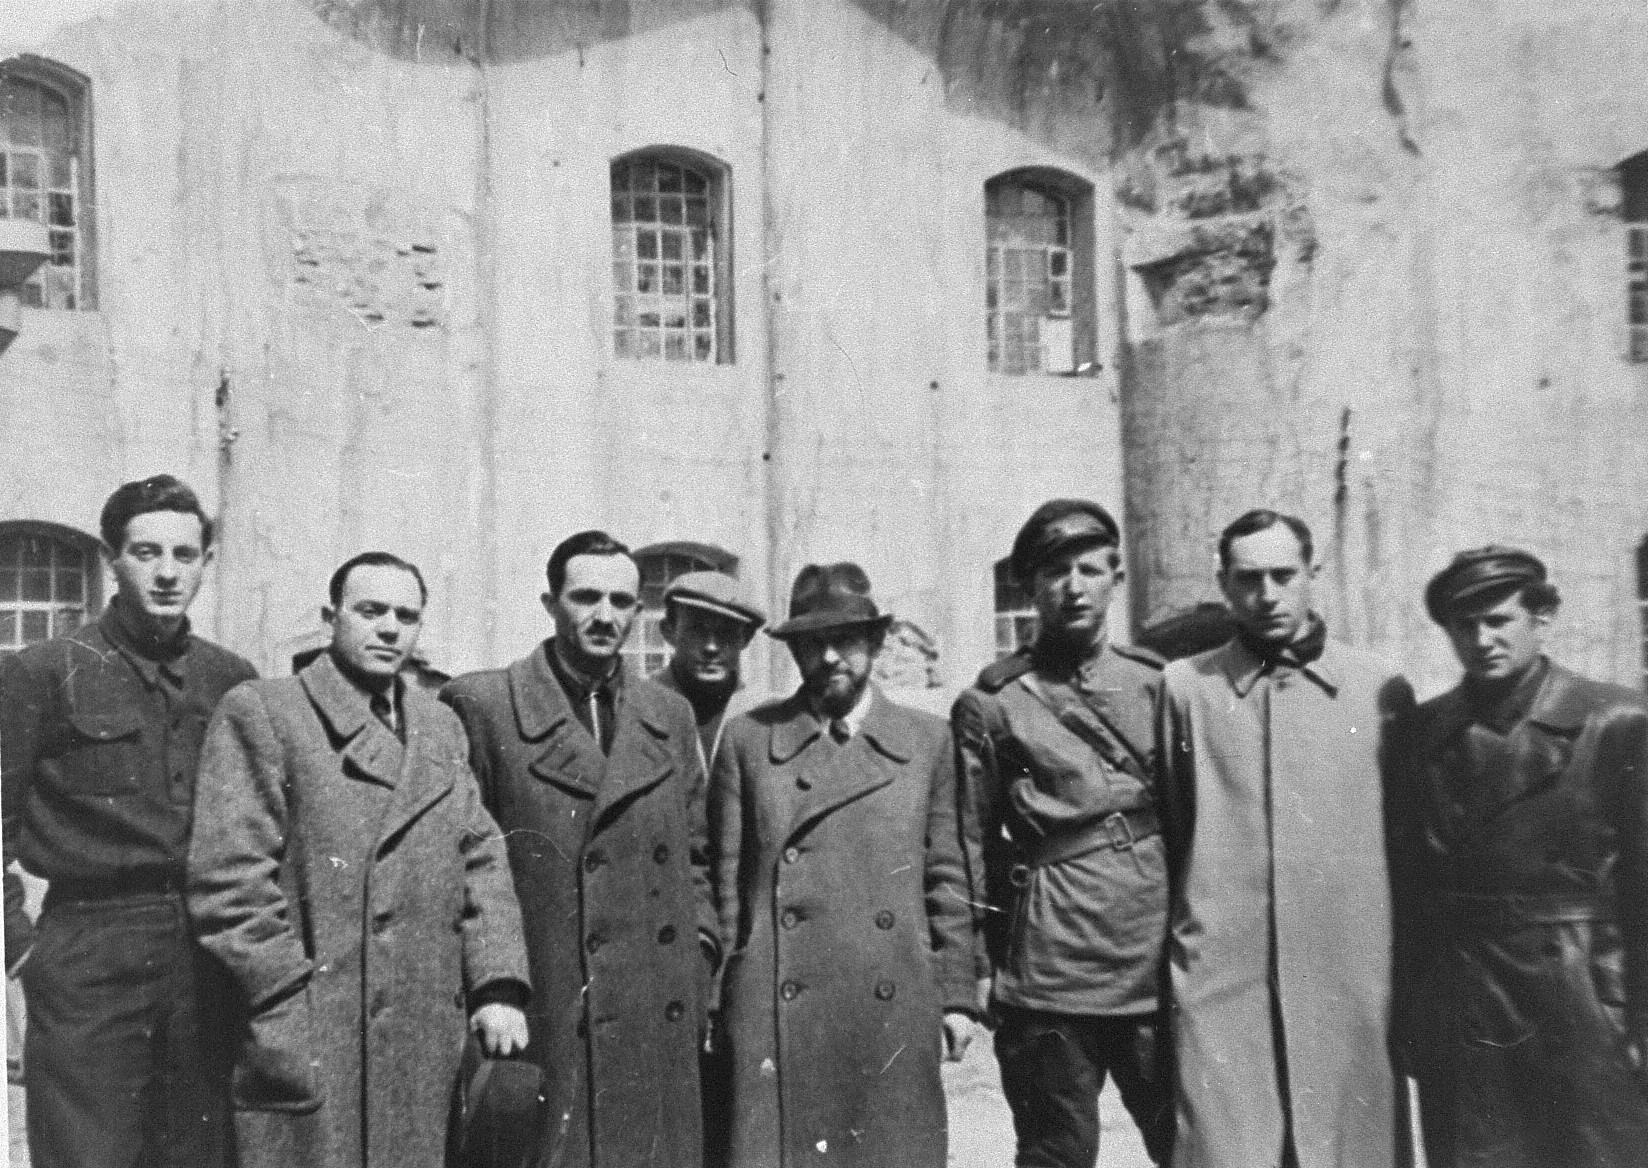 Group portrait of Jewish resistance fighters and participants in the Christmas 1943 escape from Fort IX in front of the fortress ten months after the liberation.  Pictured from left to right are: Pinia Krakinovski, Dr. Bliasberg, Meir Yellin, Zvi Kadushin, Rabbi Ephraim Oshry, Israel Gitlin, Wladyslaw Blum(?) and Berl Gempel.